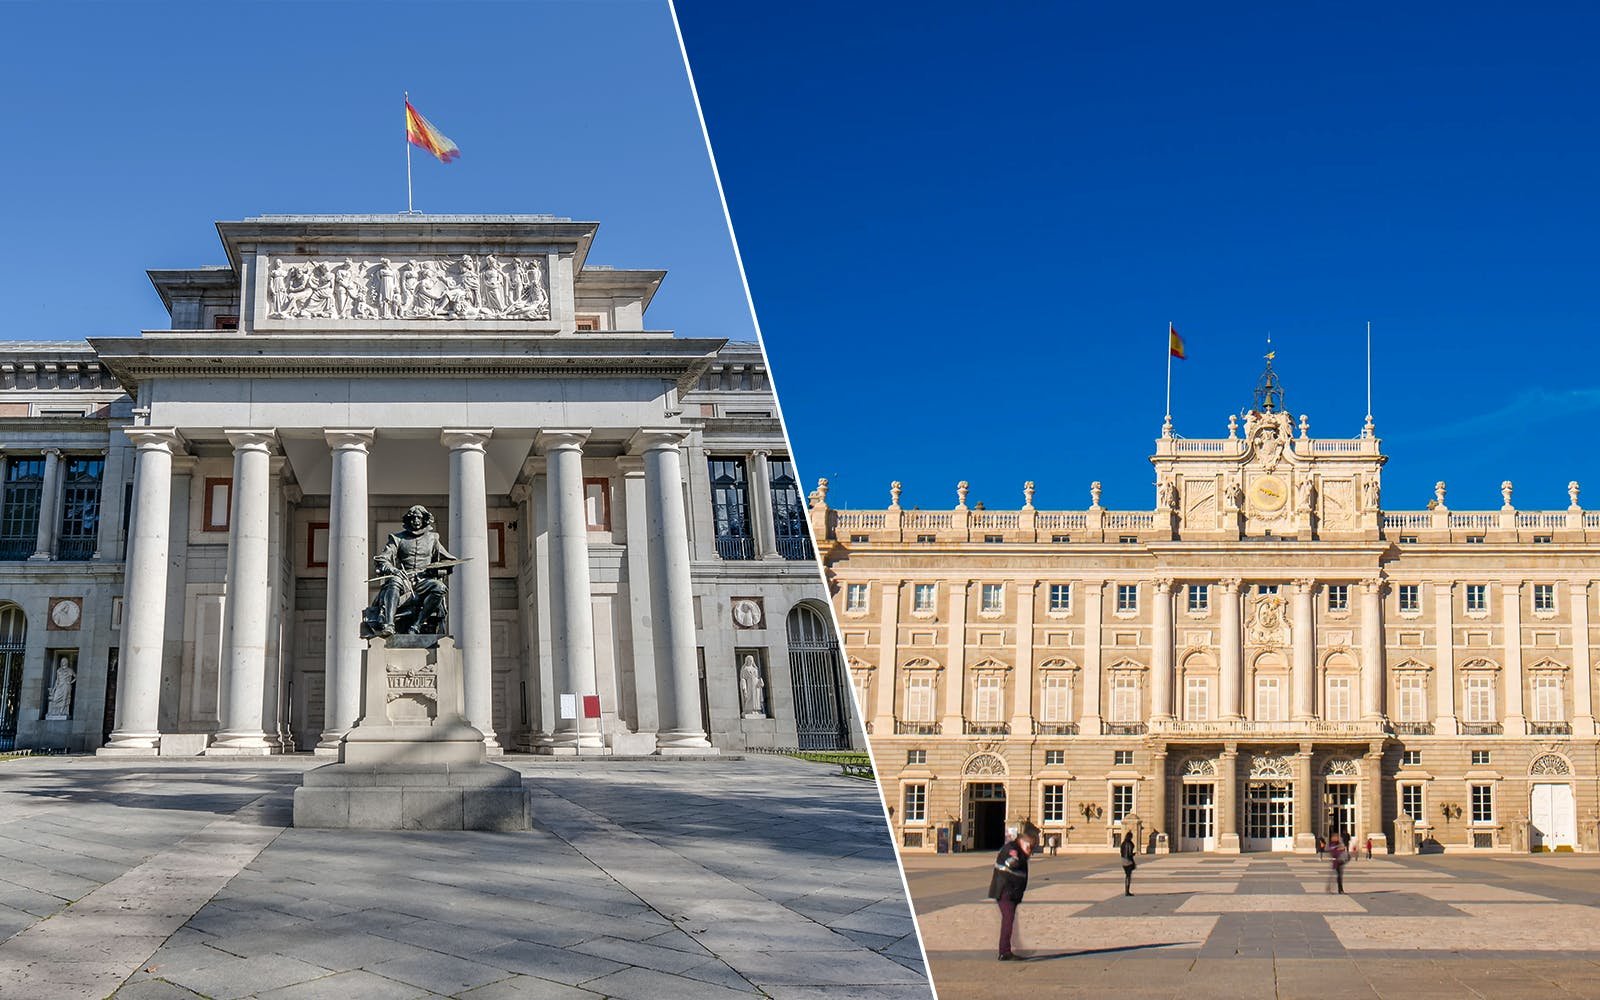 Guided Tour of the Royal Palace of Madrid and the Prado Museum with Skip the Line Tickets